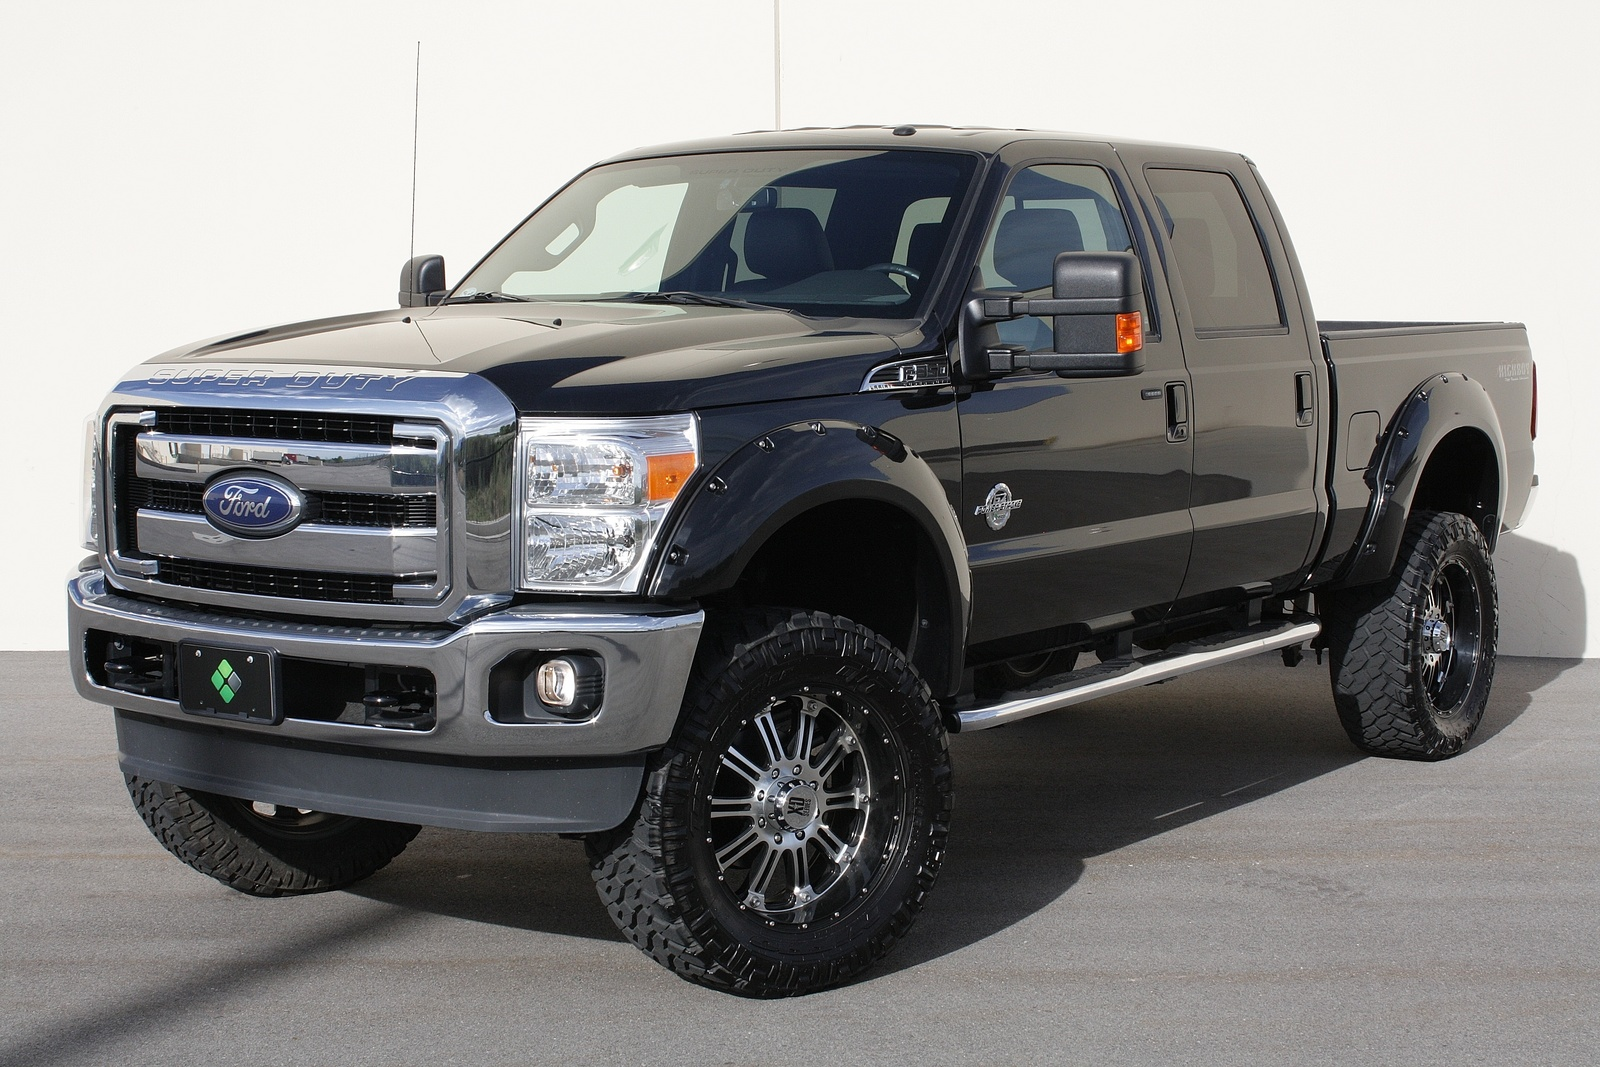 2011 Ford F-350 Super Duty - Pictures - CarGurus